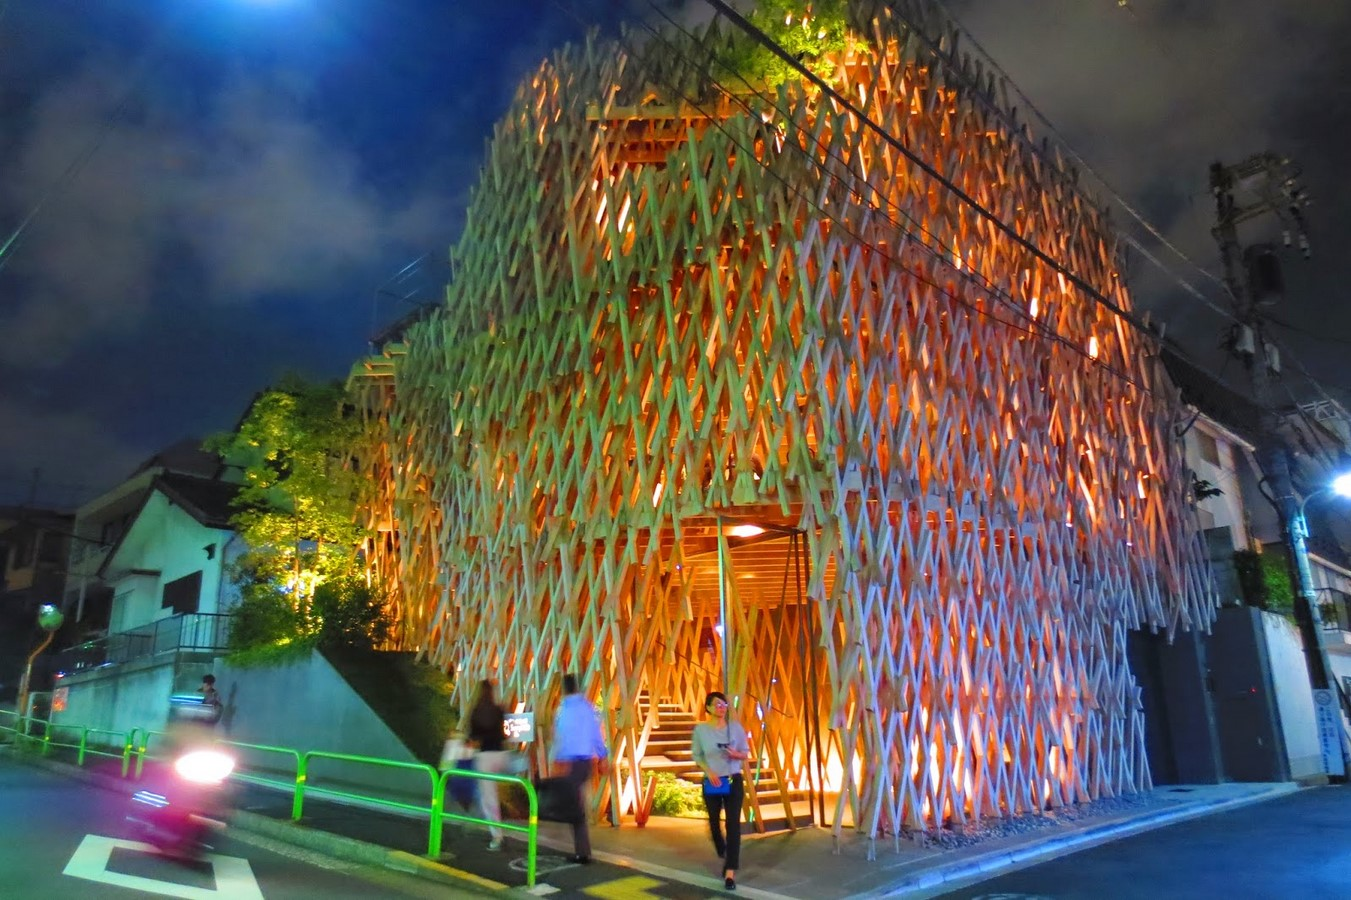 10 Examples of Wood used in Modern Architecture - Sheet9